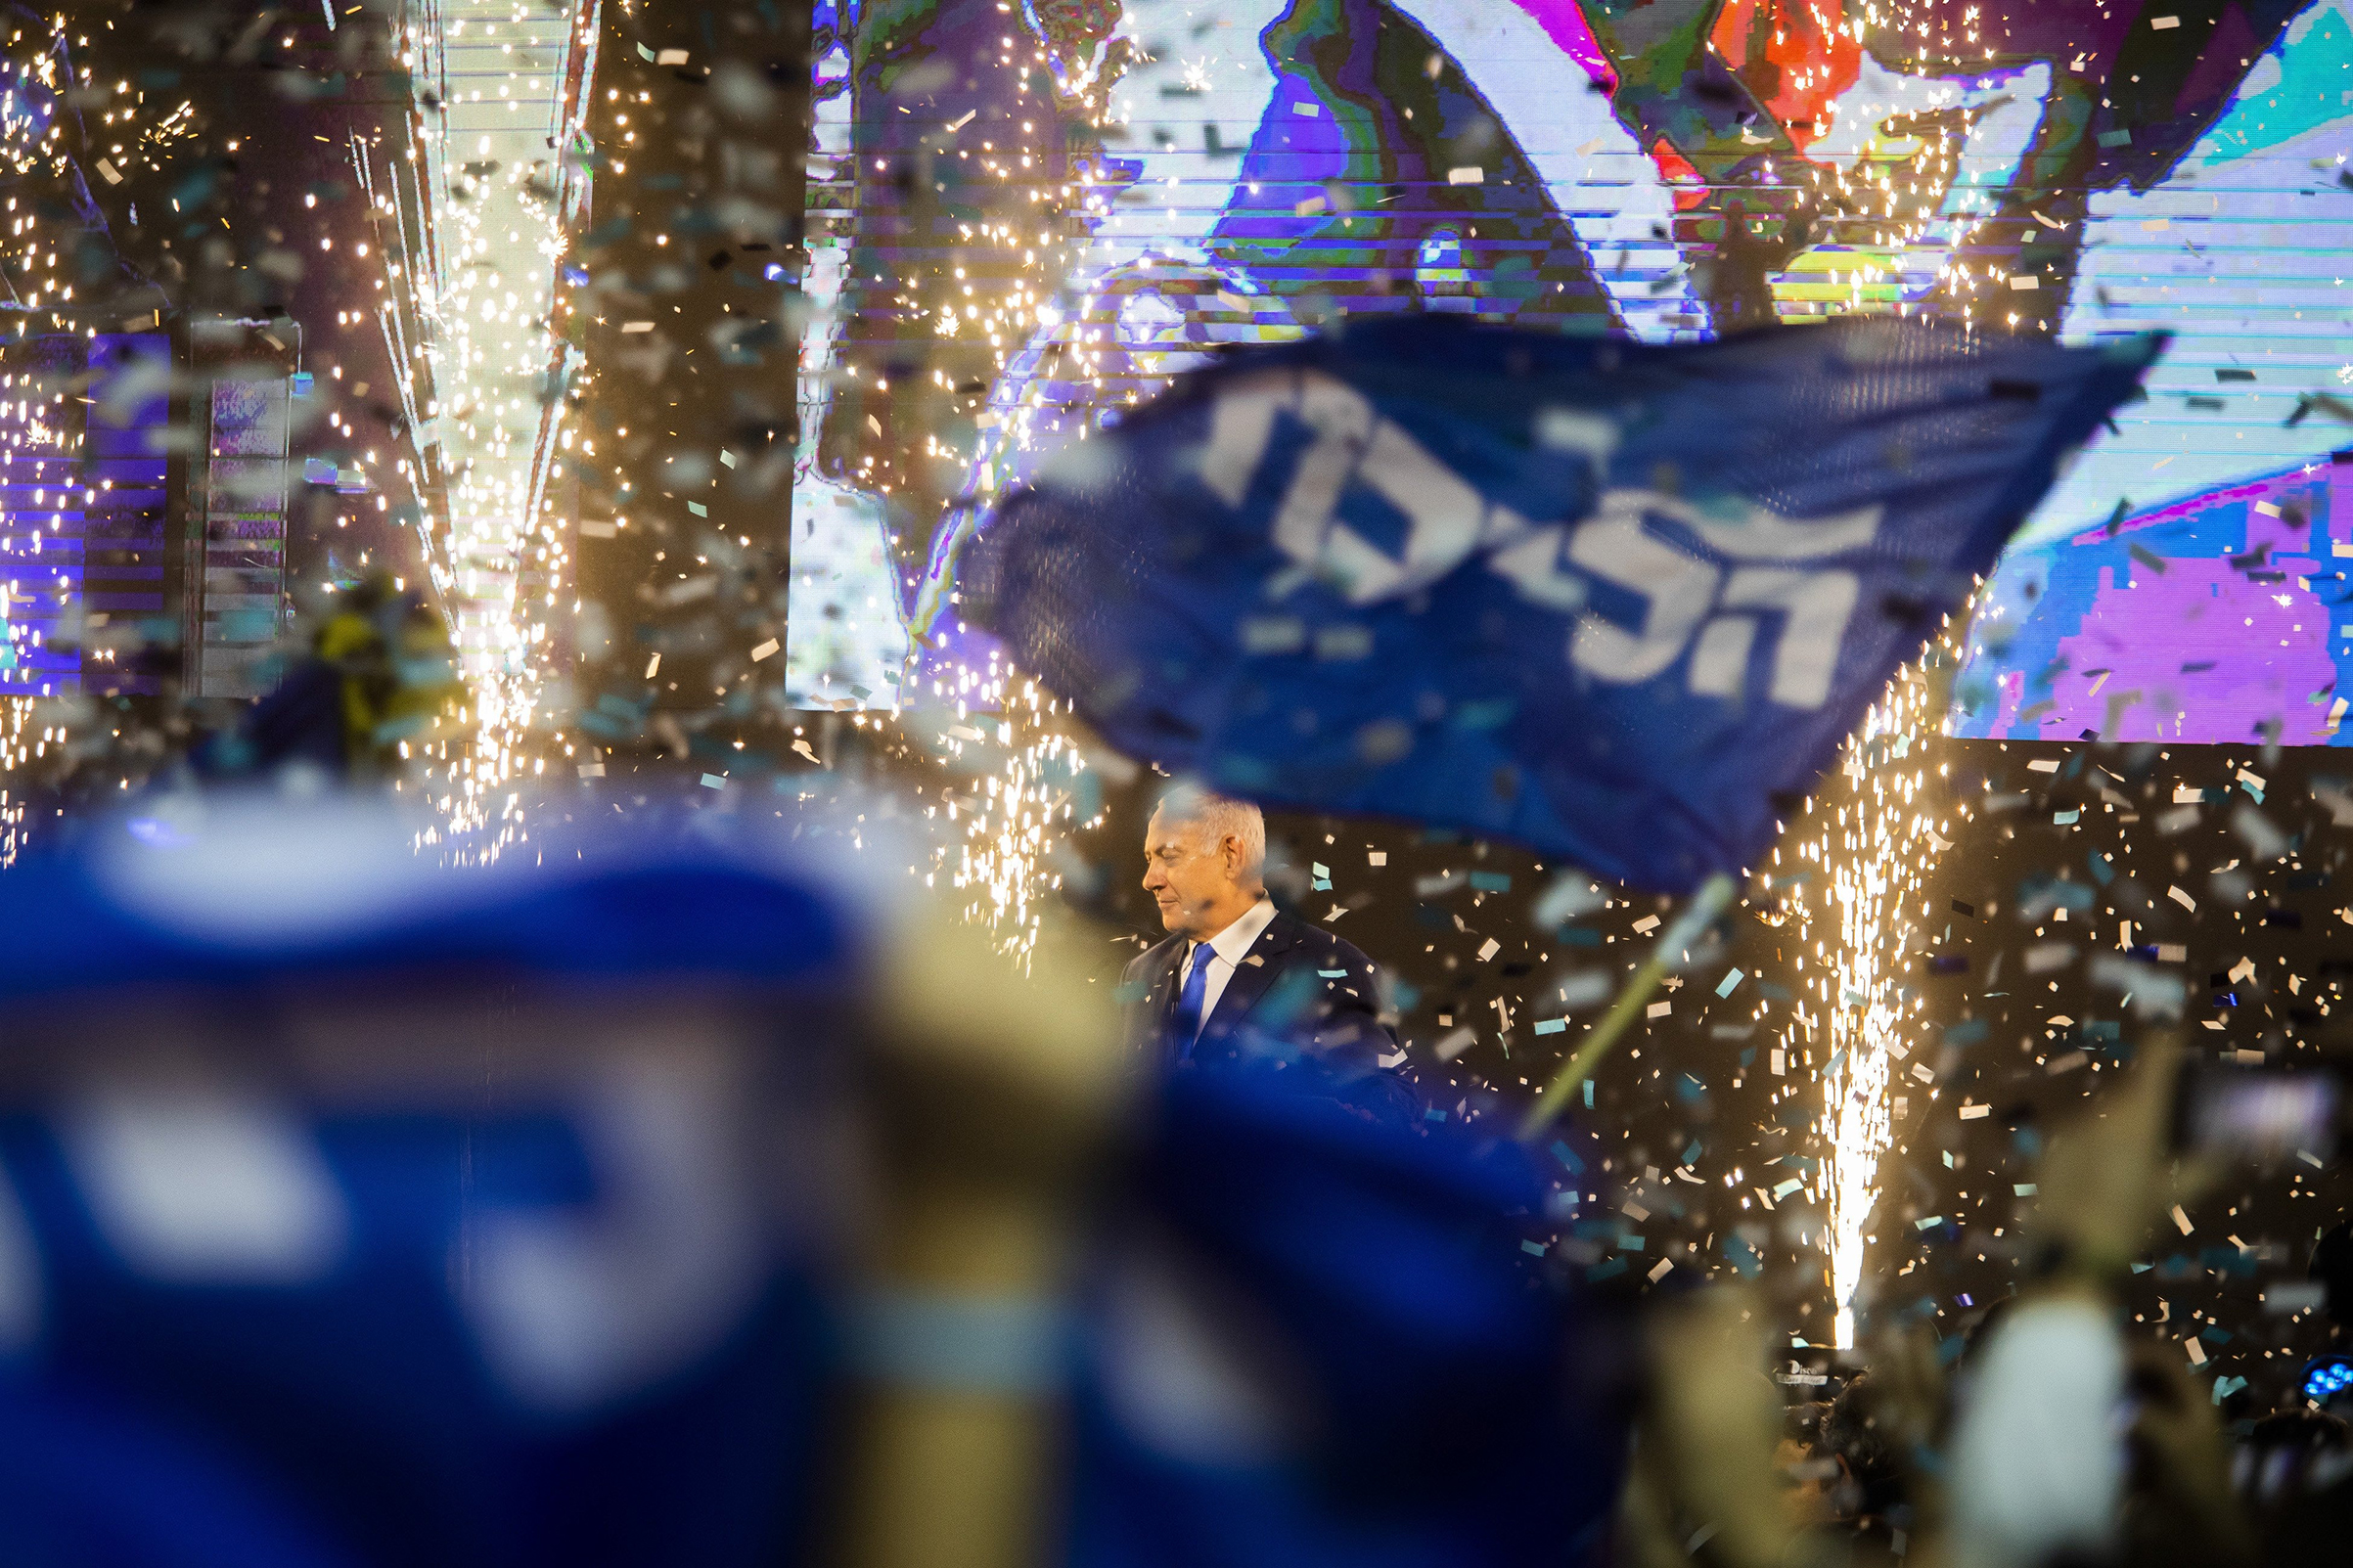 Netanyahu was feted by Likud party supporters at an election-night party in Tel Aviv